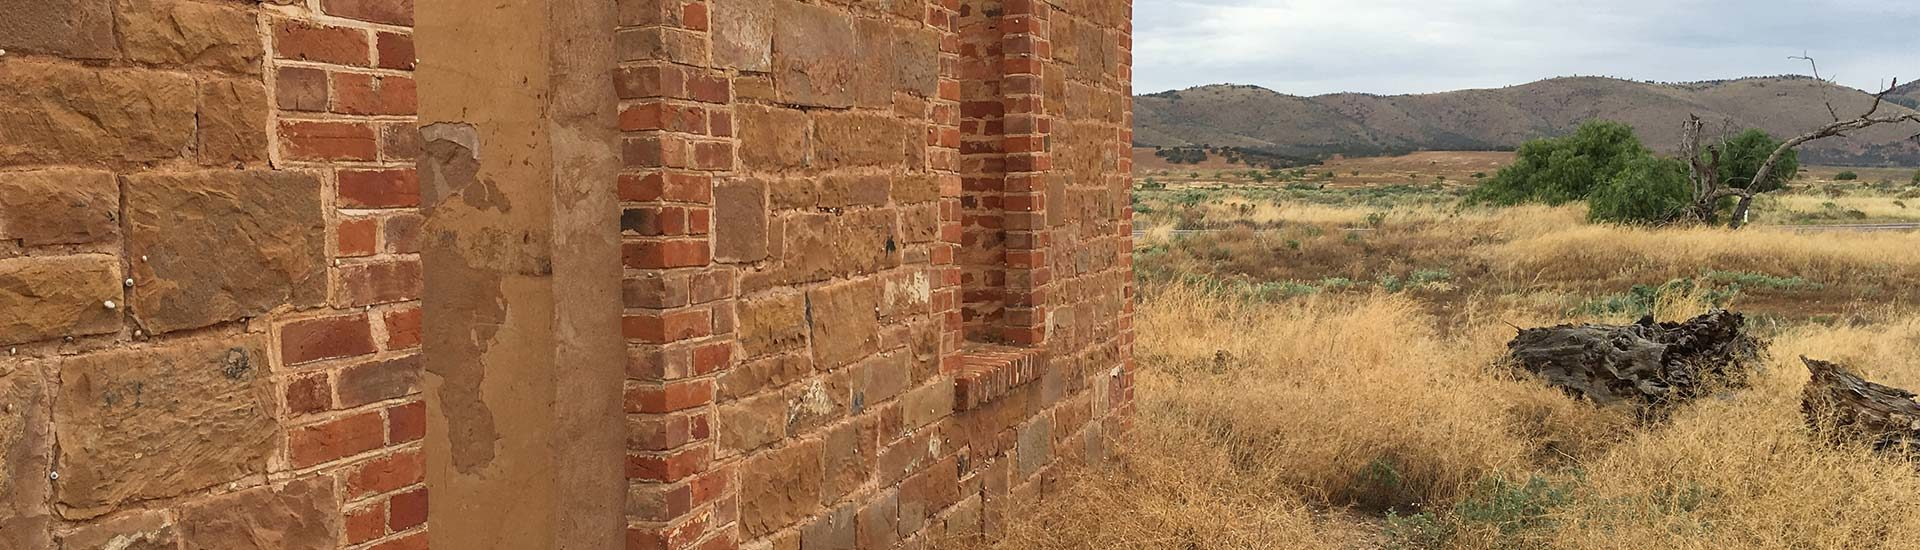 Wilpena Pound via Historic ruins to Hahndorf ⋆ Hatch a Holiday